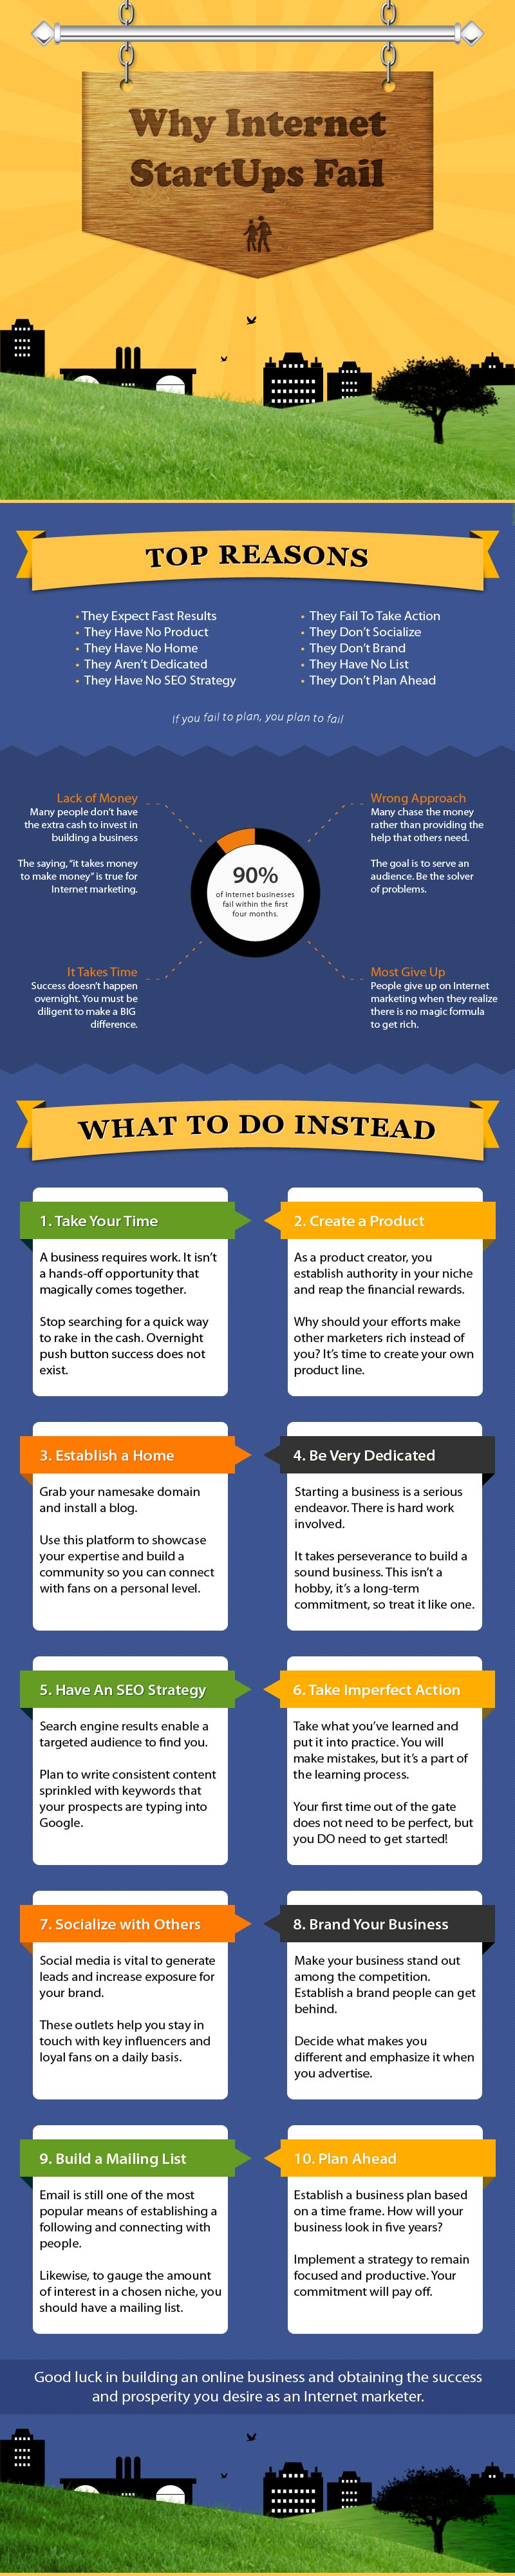 Infographic Why Internet Startups Fail